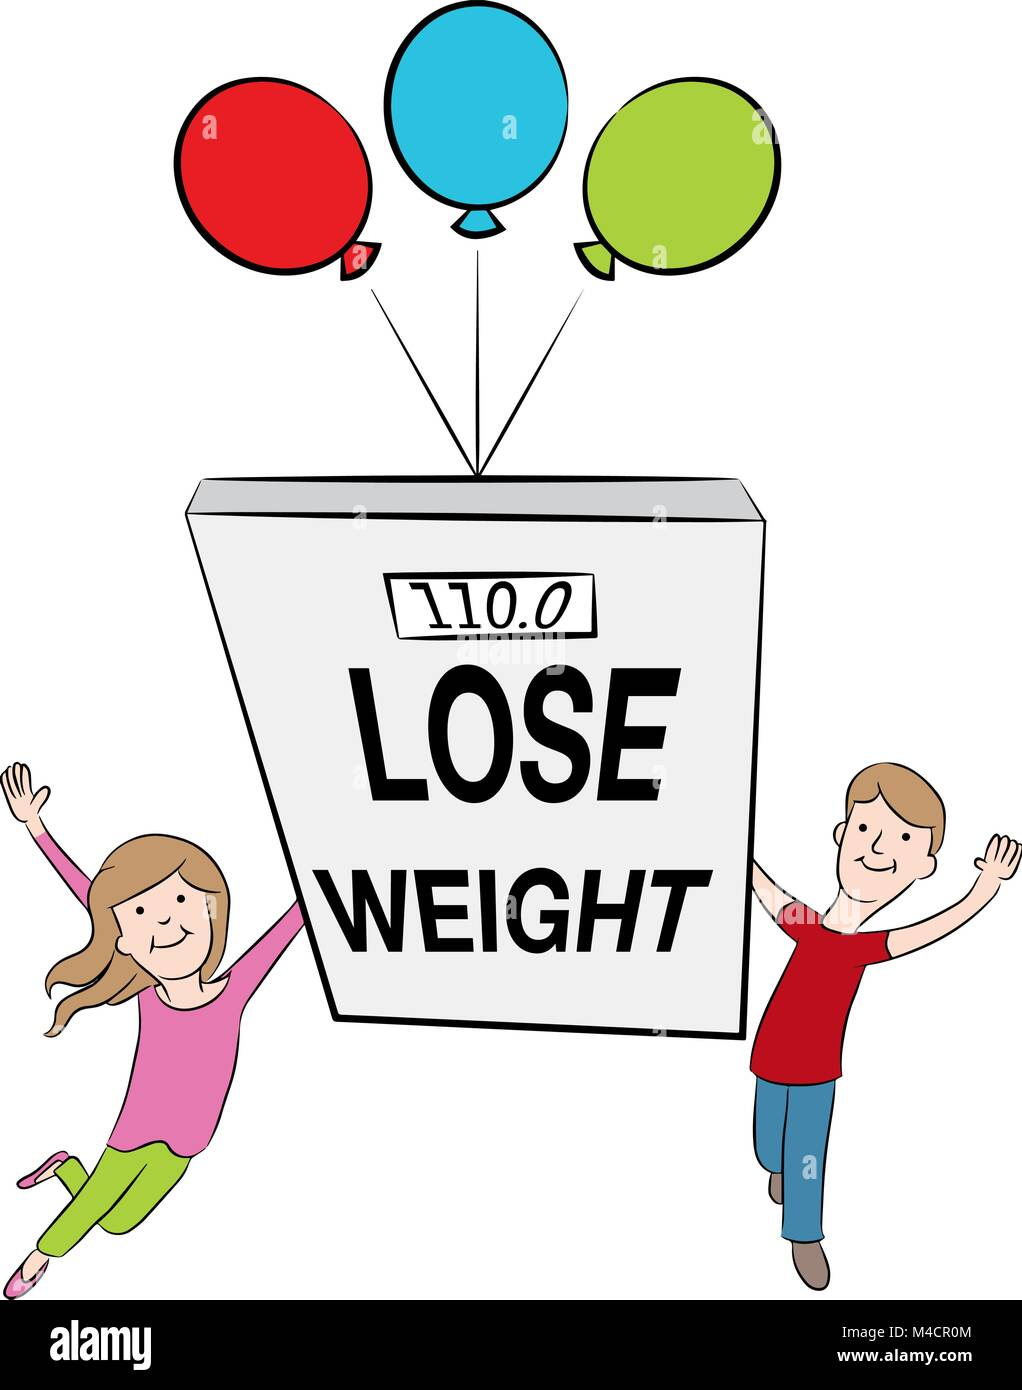 An Image Of Cartoon Kids Supporting Weight Loss And Being Healthy Stock Vector Image Art Alamy